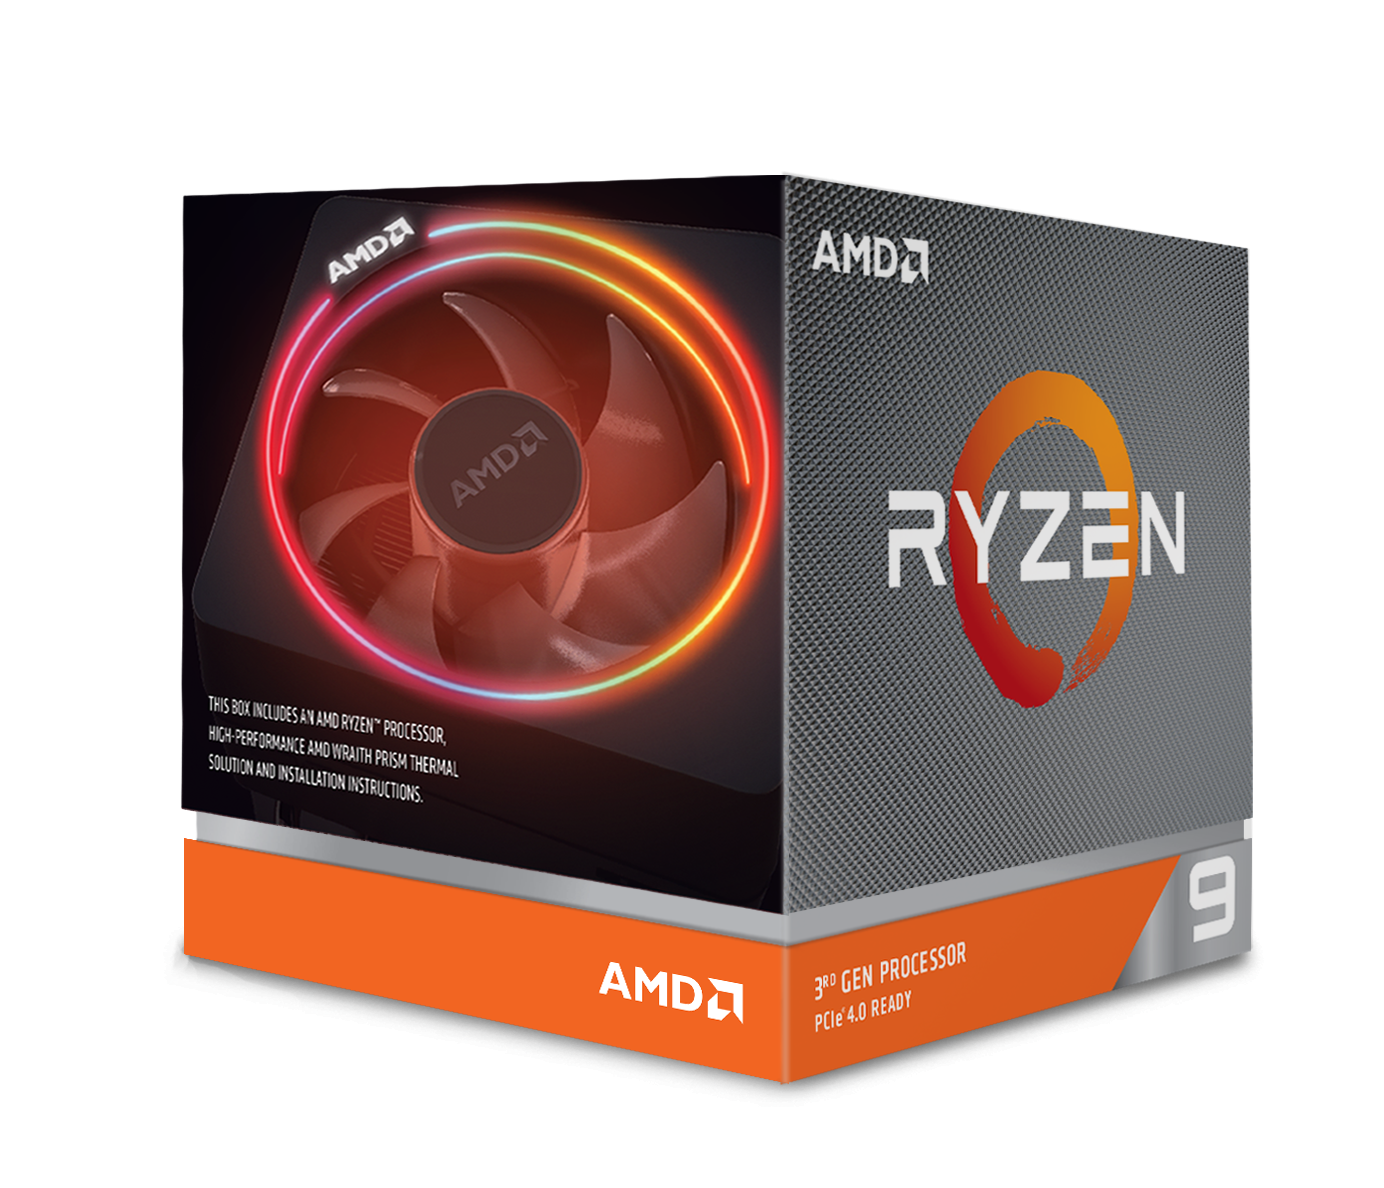 Процесор AMD RYZEN 9 3900X 12-Core 3.8 GHz (4.6 GHz Turbo) 70MB/105W/AM4/BOX